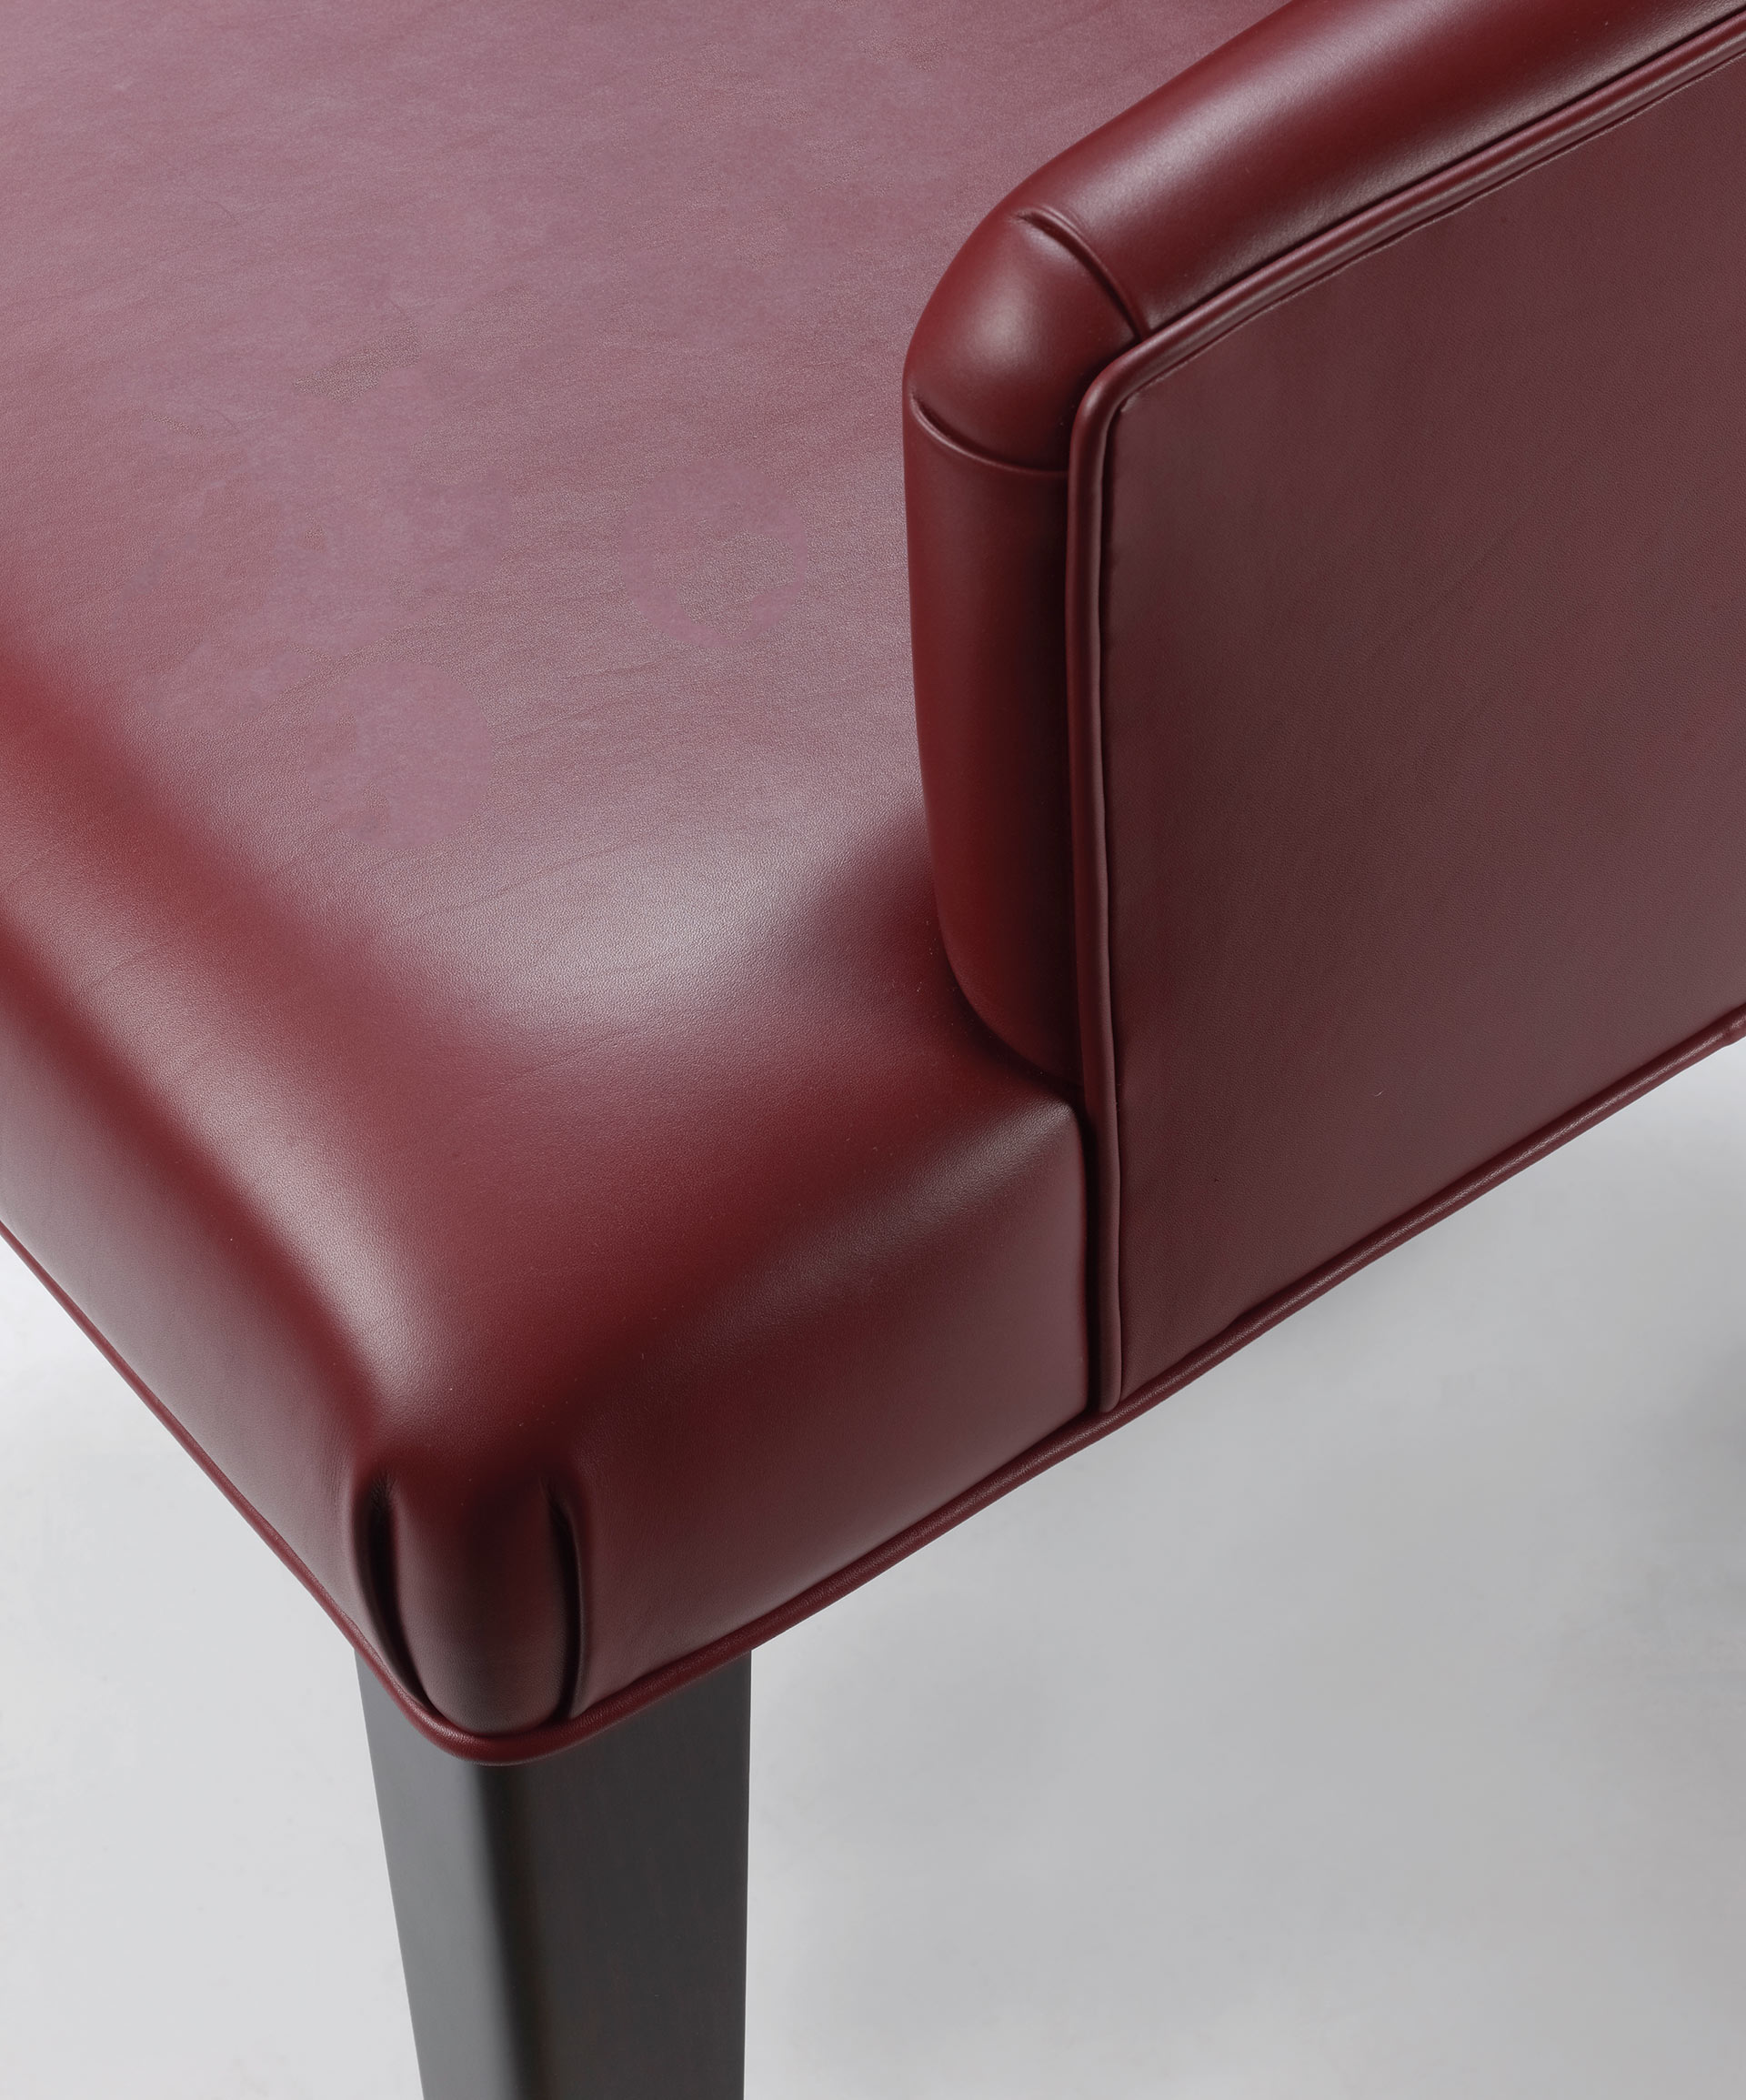 Detail of the bronze handle on the back of Isotta, a wooden dining chair with or without armrests and with a fabric or leather covered back, from Promemoria's catalogue   Promemoria